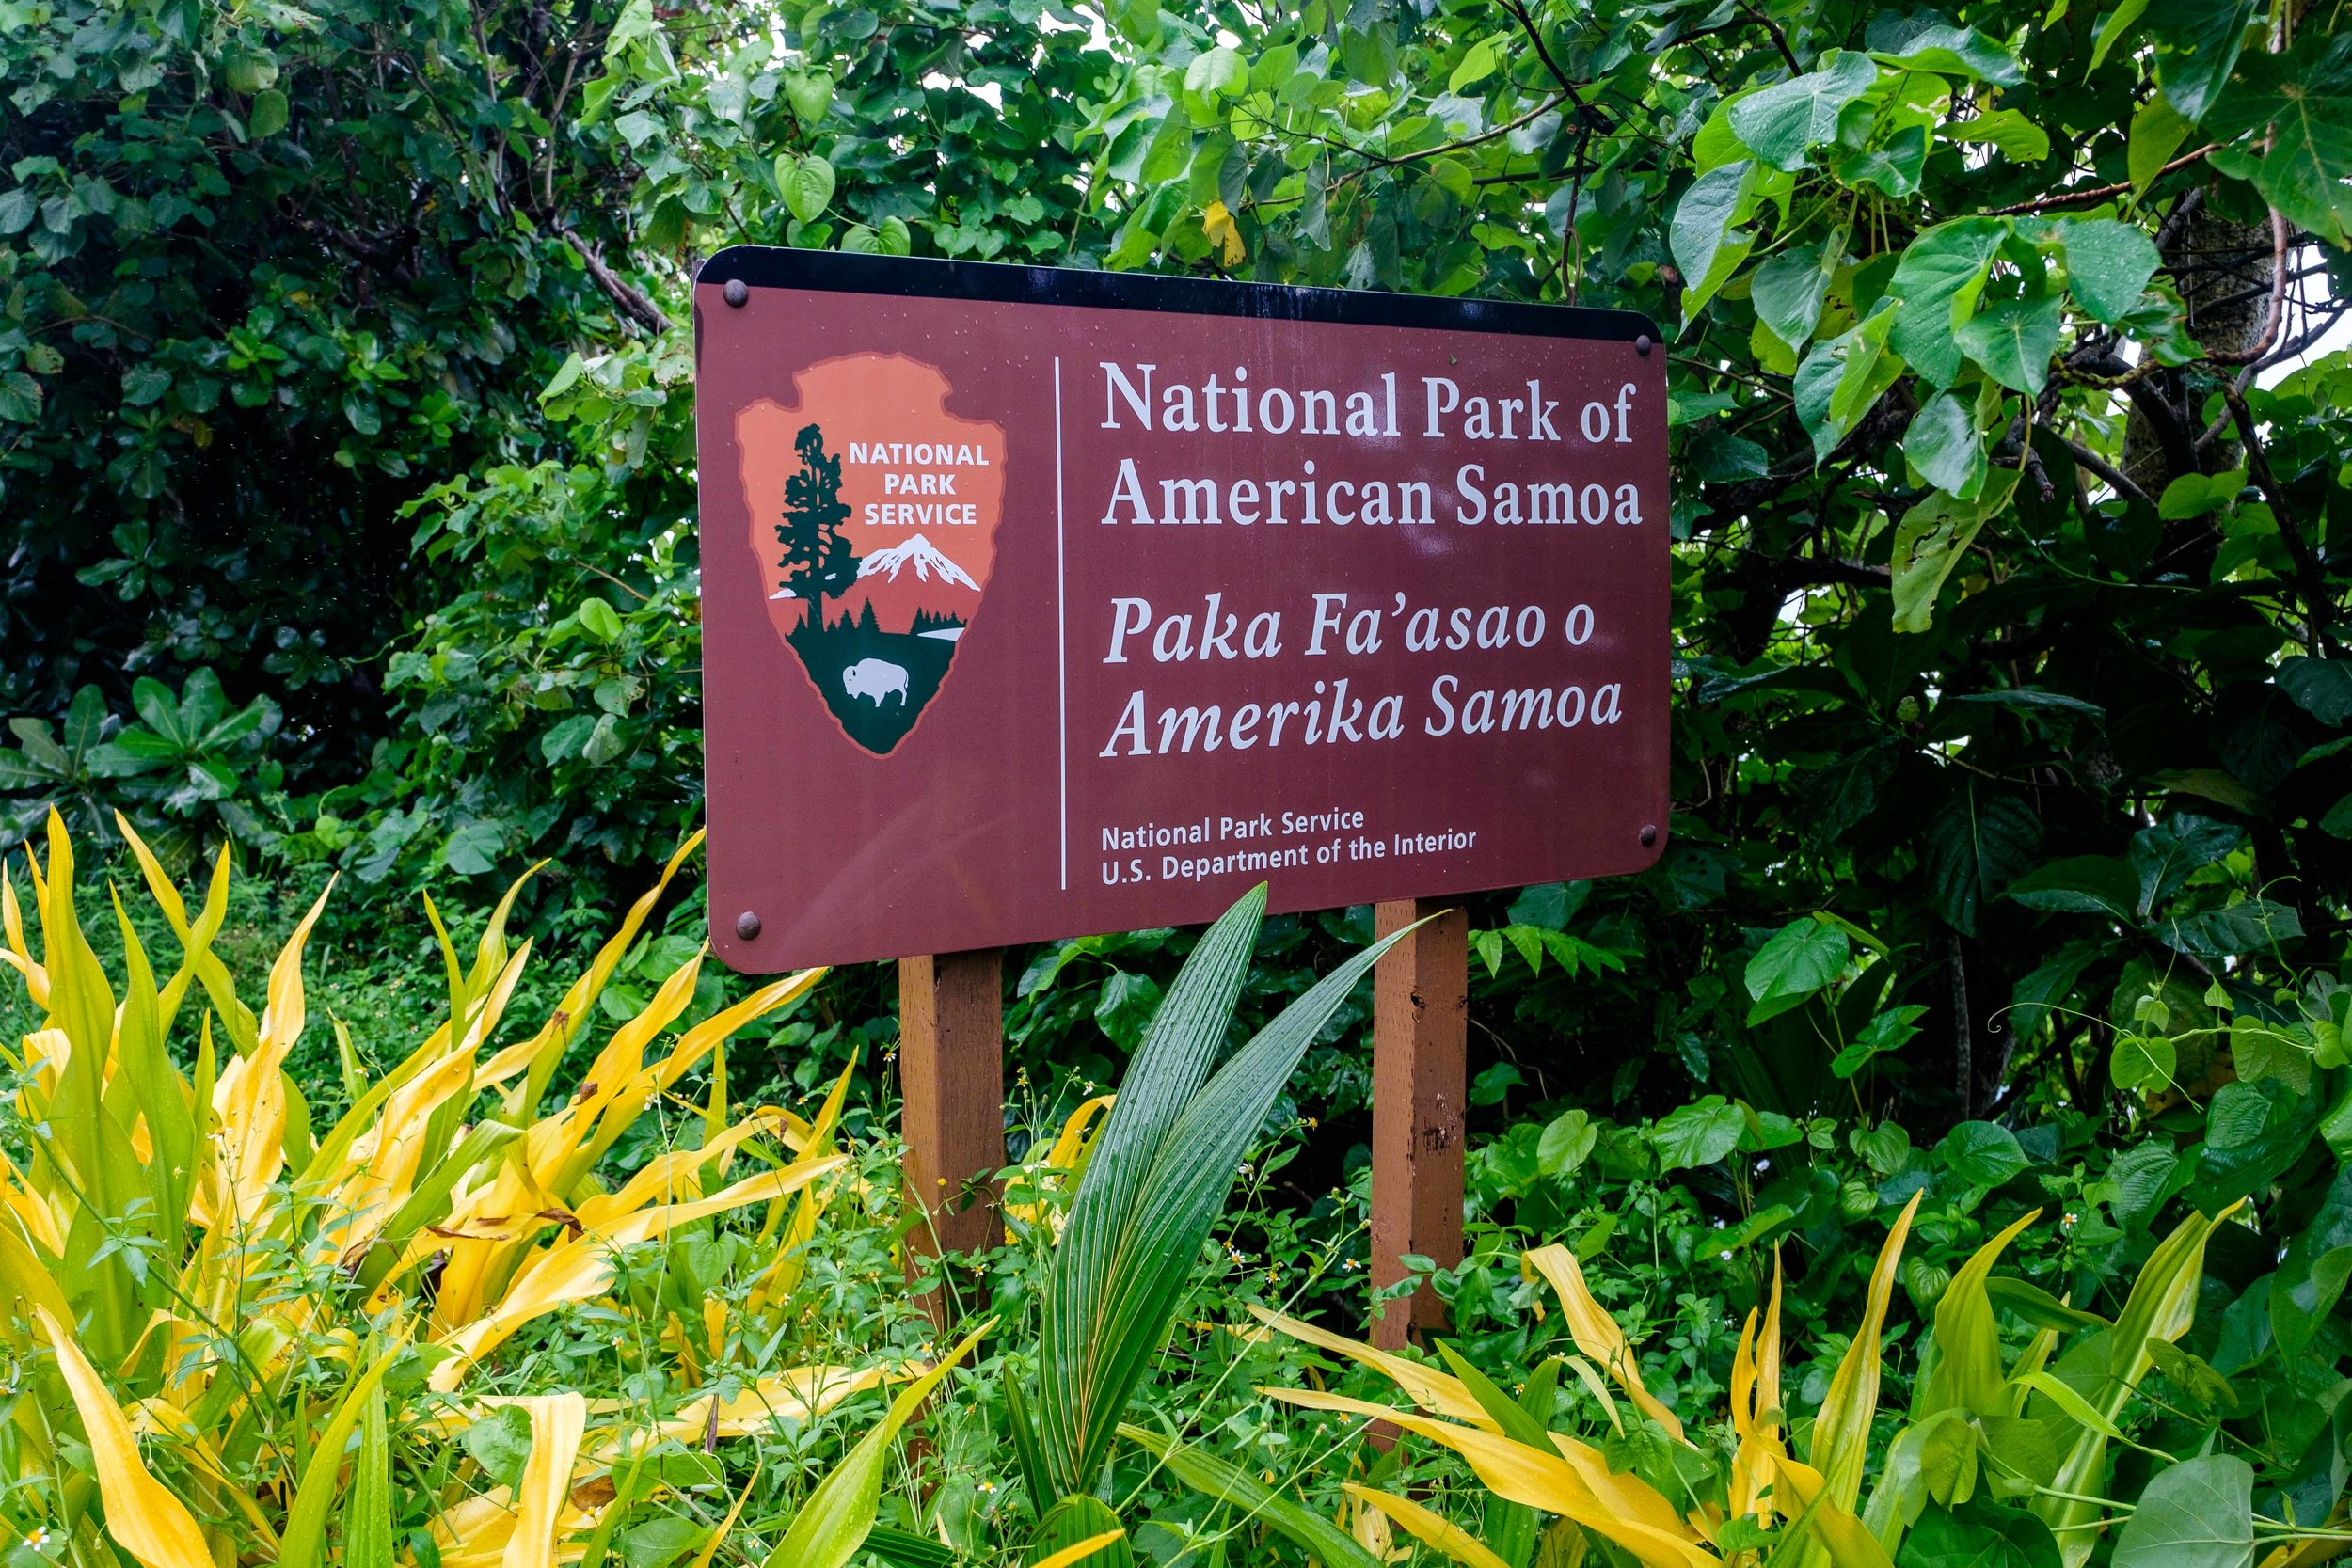 One of the official national park signs.